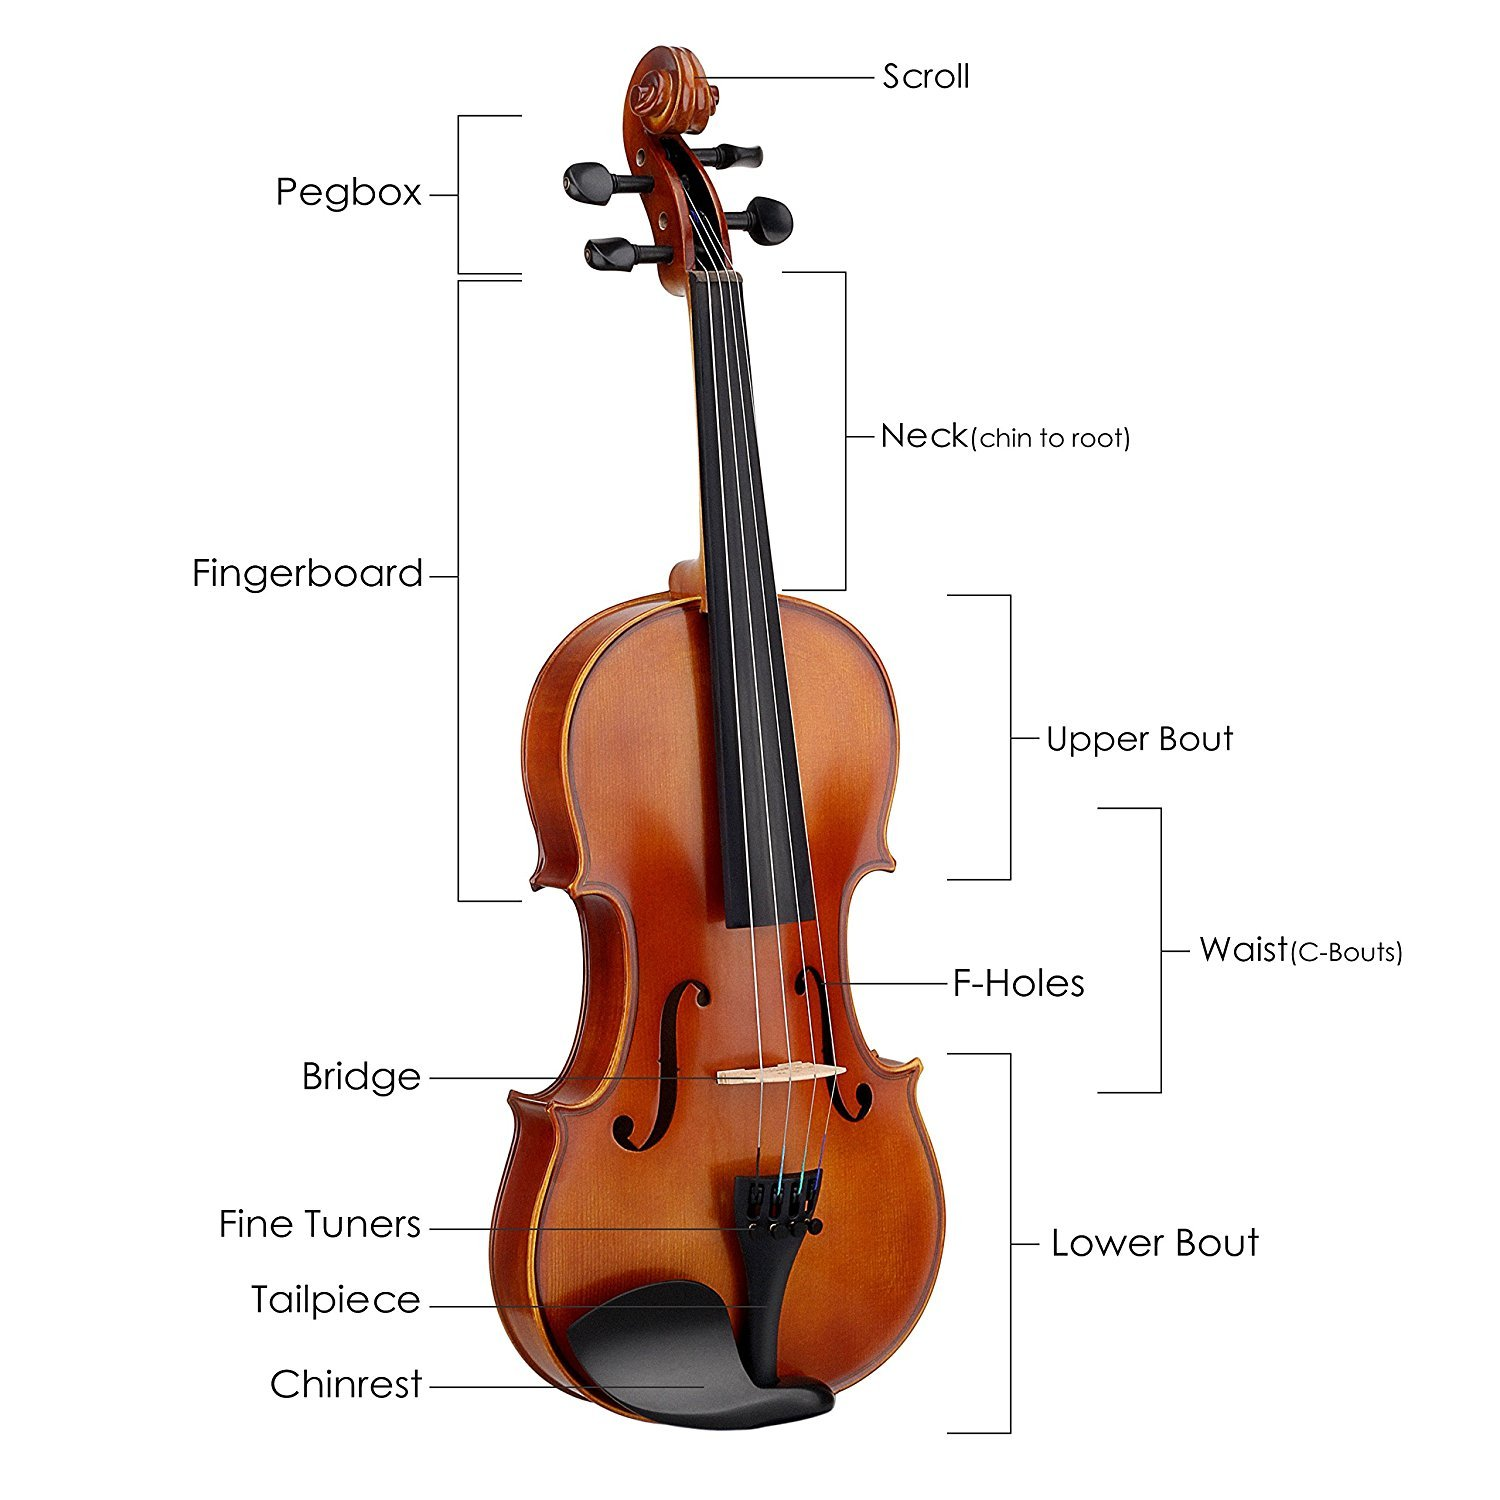 Mugig Violin 4/4 Full Size, Solid Wood Violin Kit with Case, String and Rosin, Ebony Fingerboard, Pegs, Chin Rest